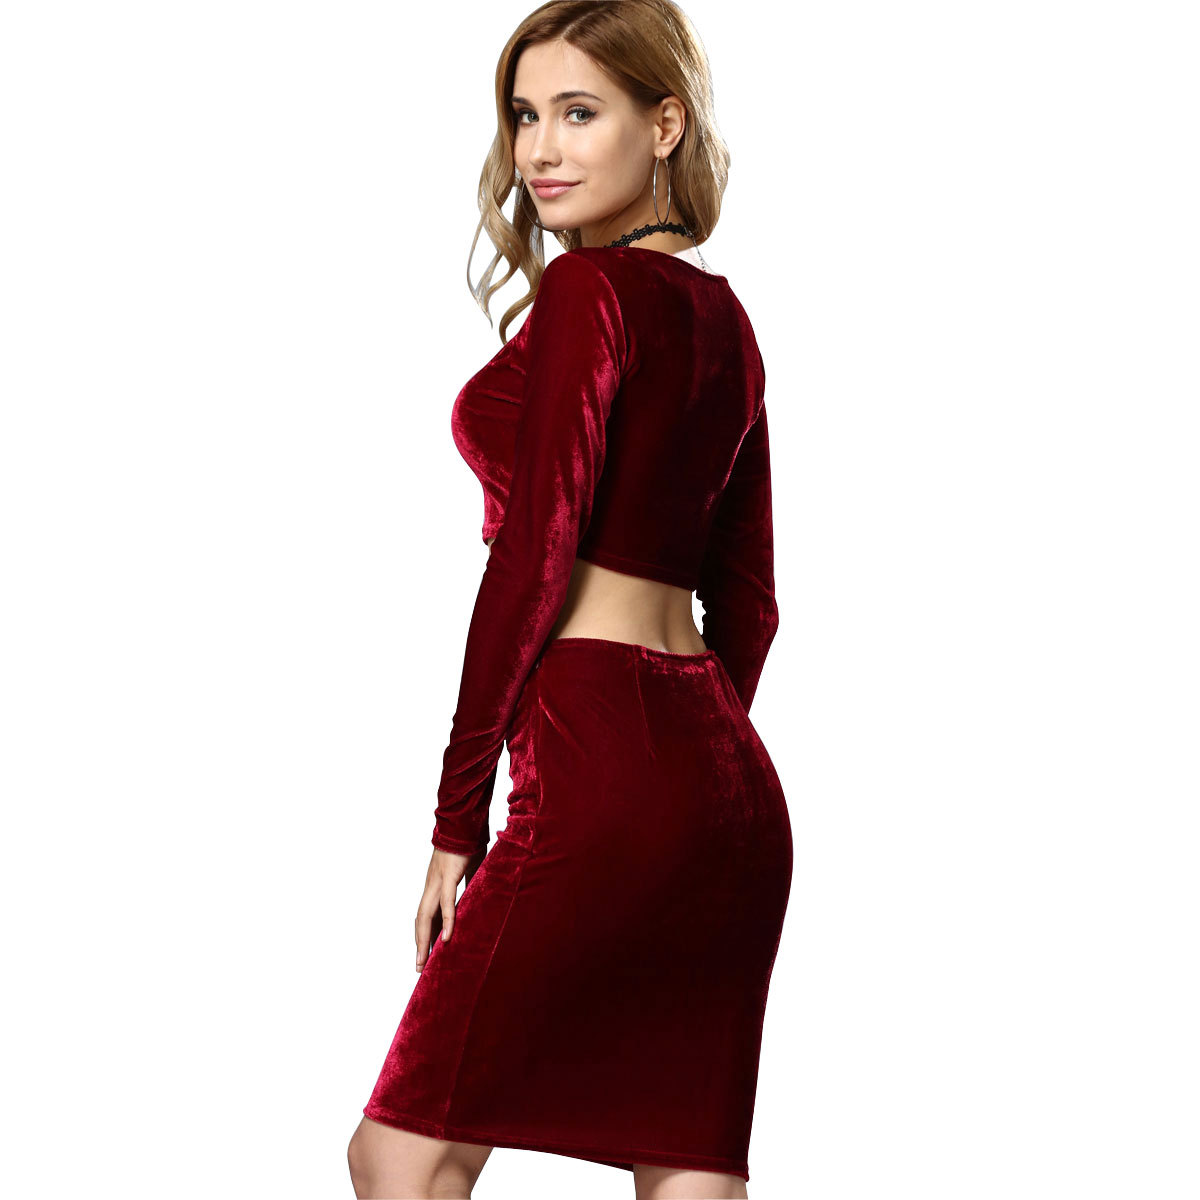 Women 39 s Sets Sexy Velvet Outfits Bodycon Long Sleeve Crop Top Midi Skirt 2 Piece Dress in Women 39 s Sets from Women 39 s Clothing